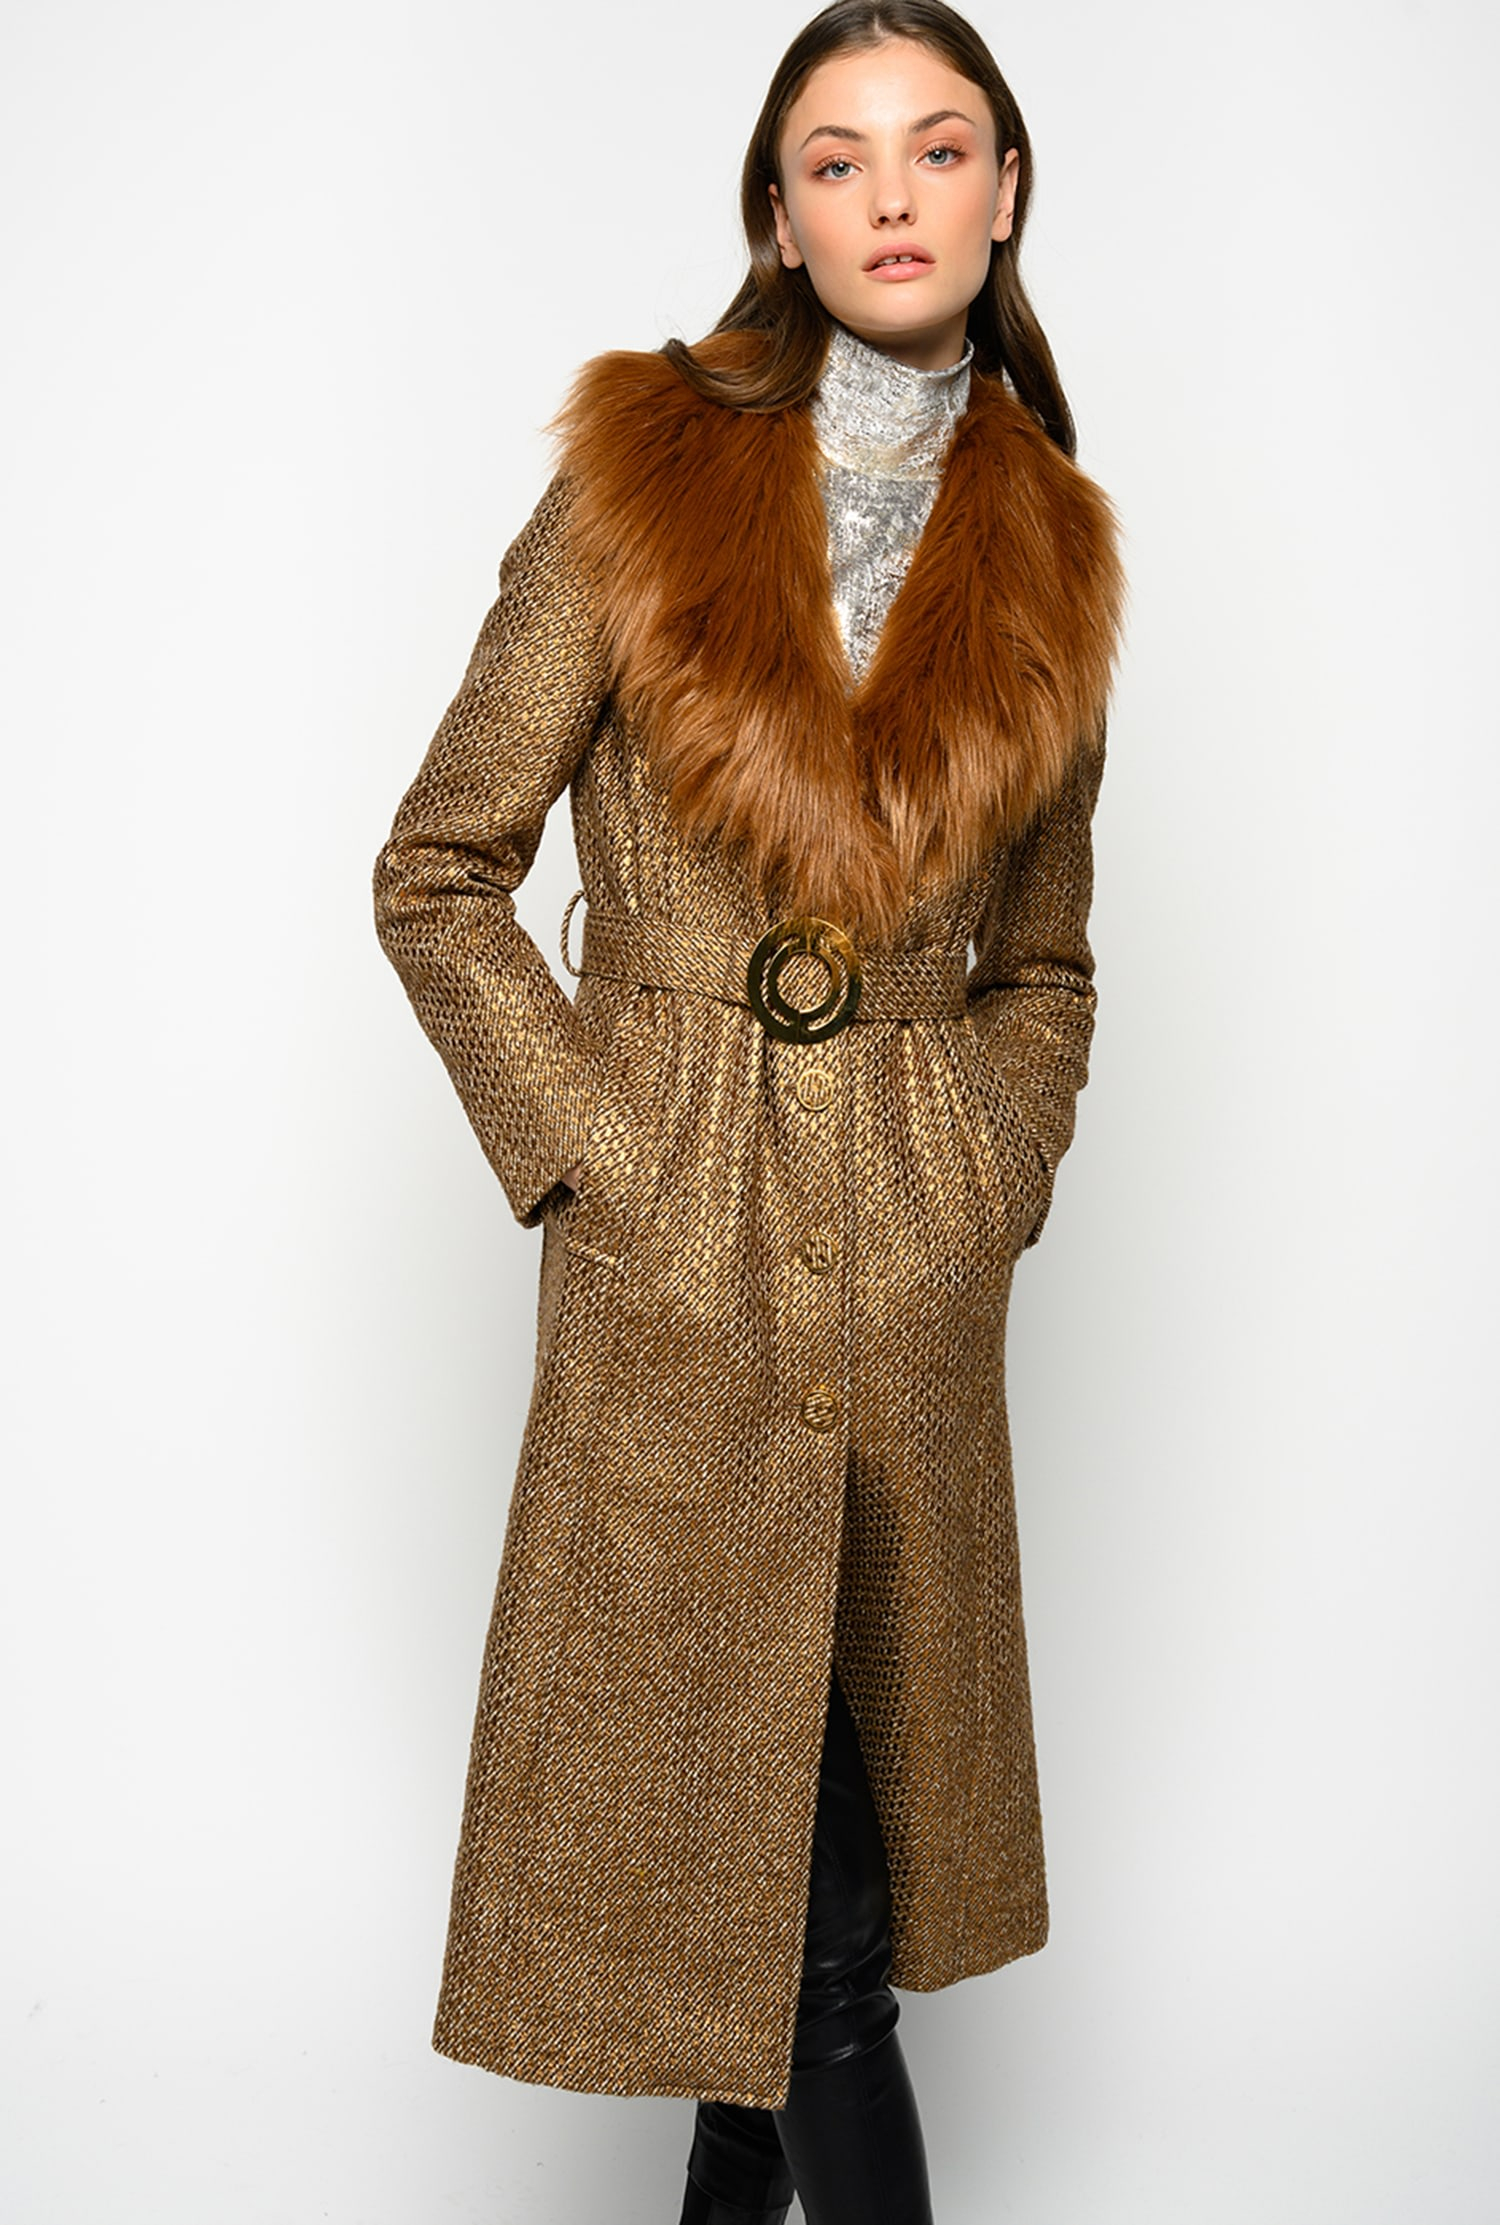 SHOPPING ON LINE PINKO CAPPOTTO LUNGO IN TWEED CON FAUX FUR METEORA NEW COLLECTION WOMEN'S FALL WINTER 2020/2021